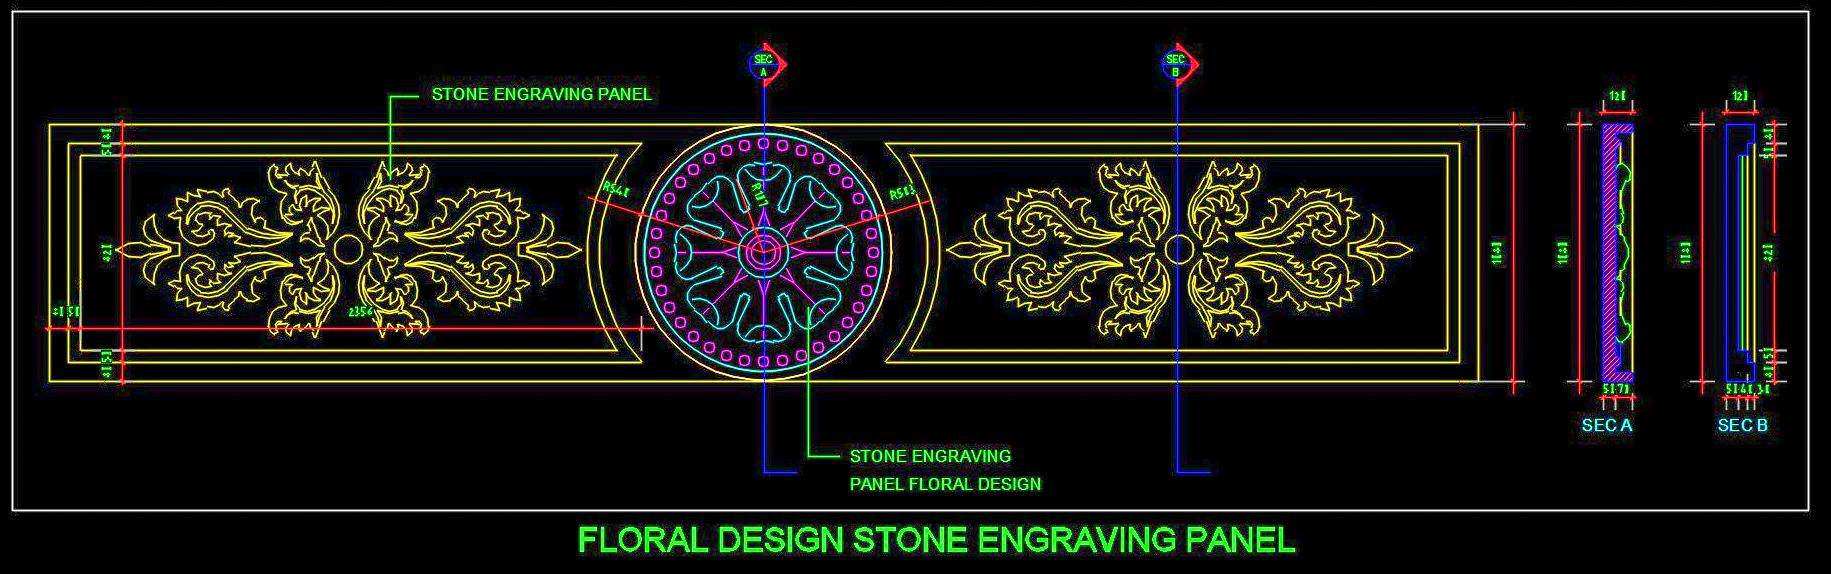 Floral Design Stone Engraving Panel DWG Drawing Detail